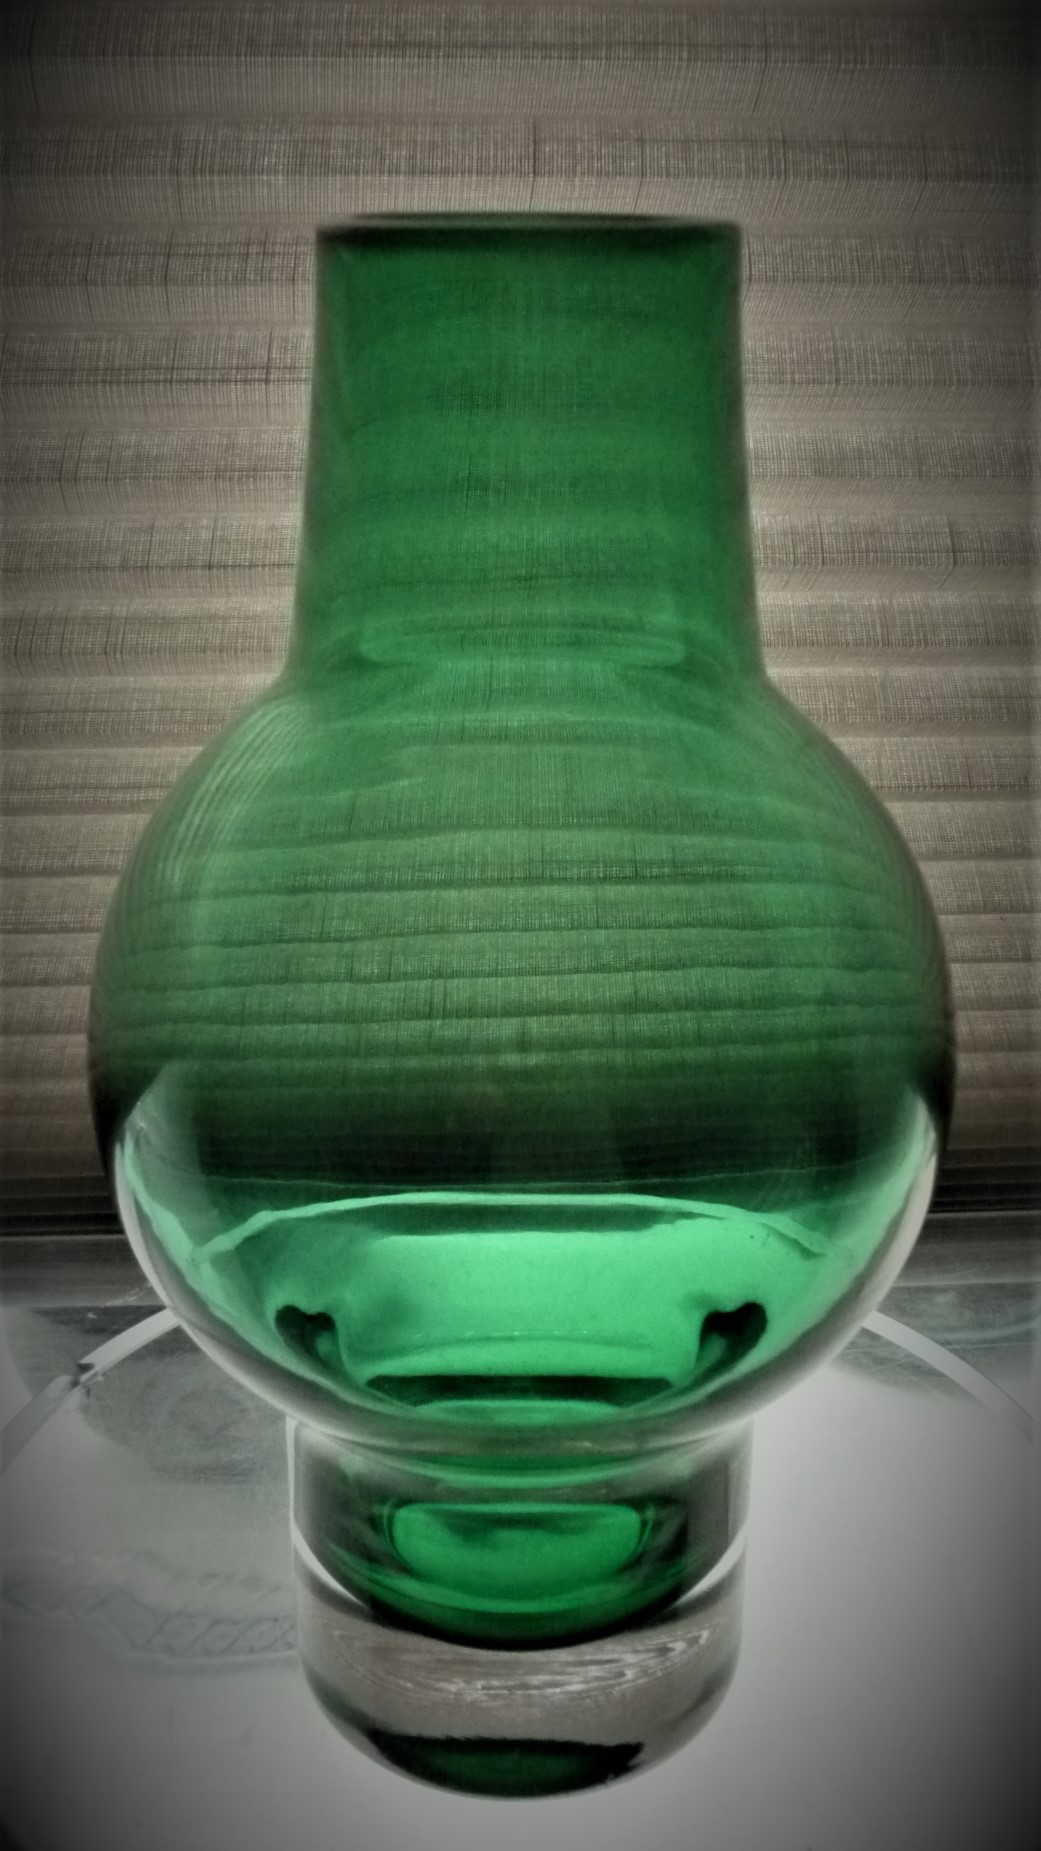 Green and clear cased glass vase. Made by Riihimaki of Finland in the 1970's, and designed by Aimo Okkolin.